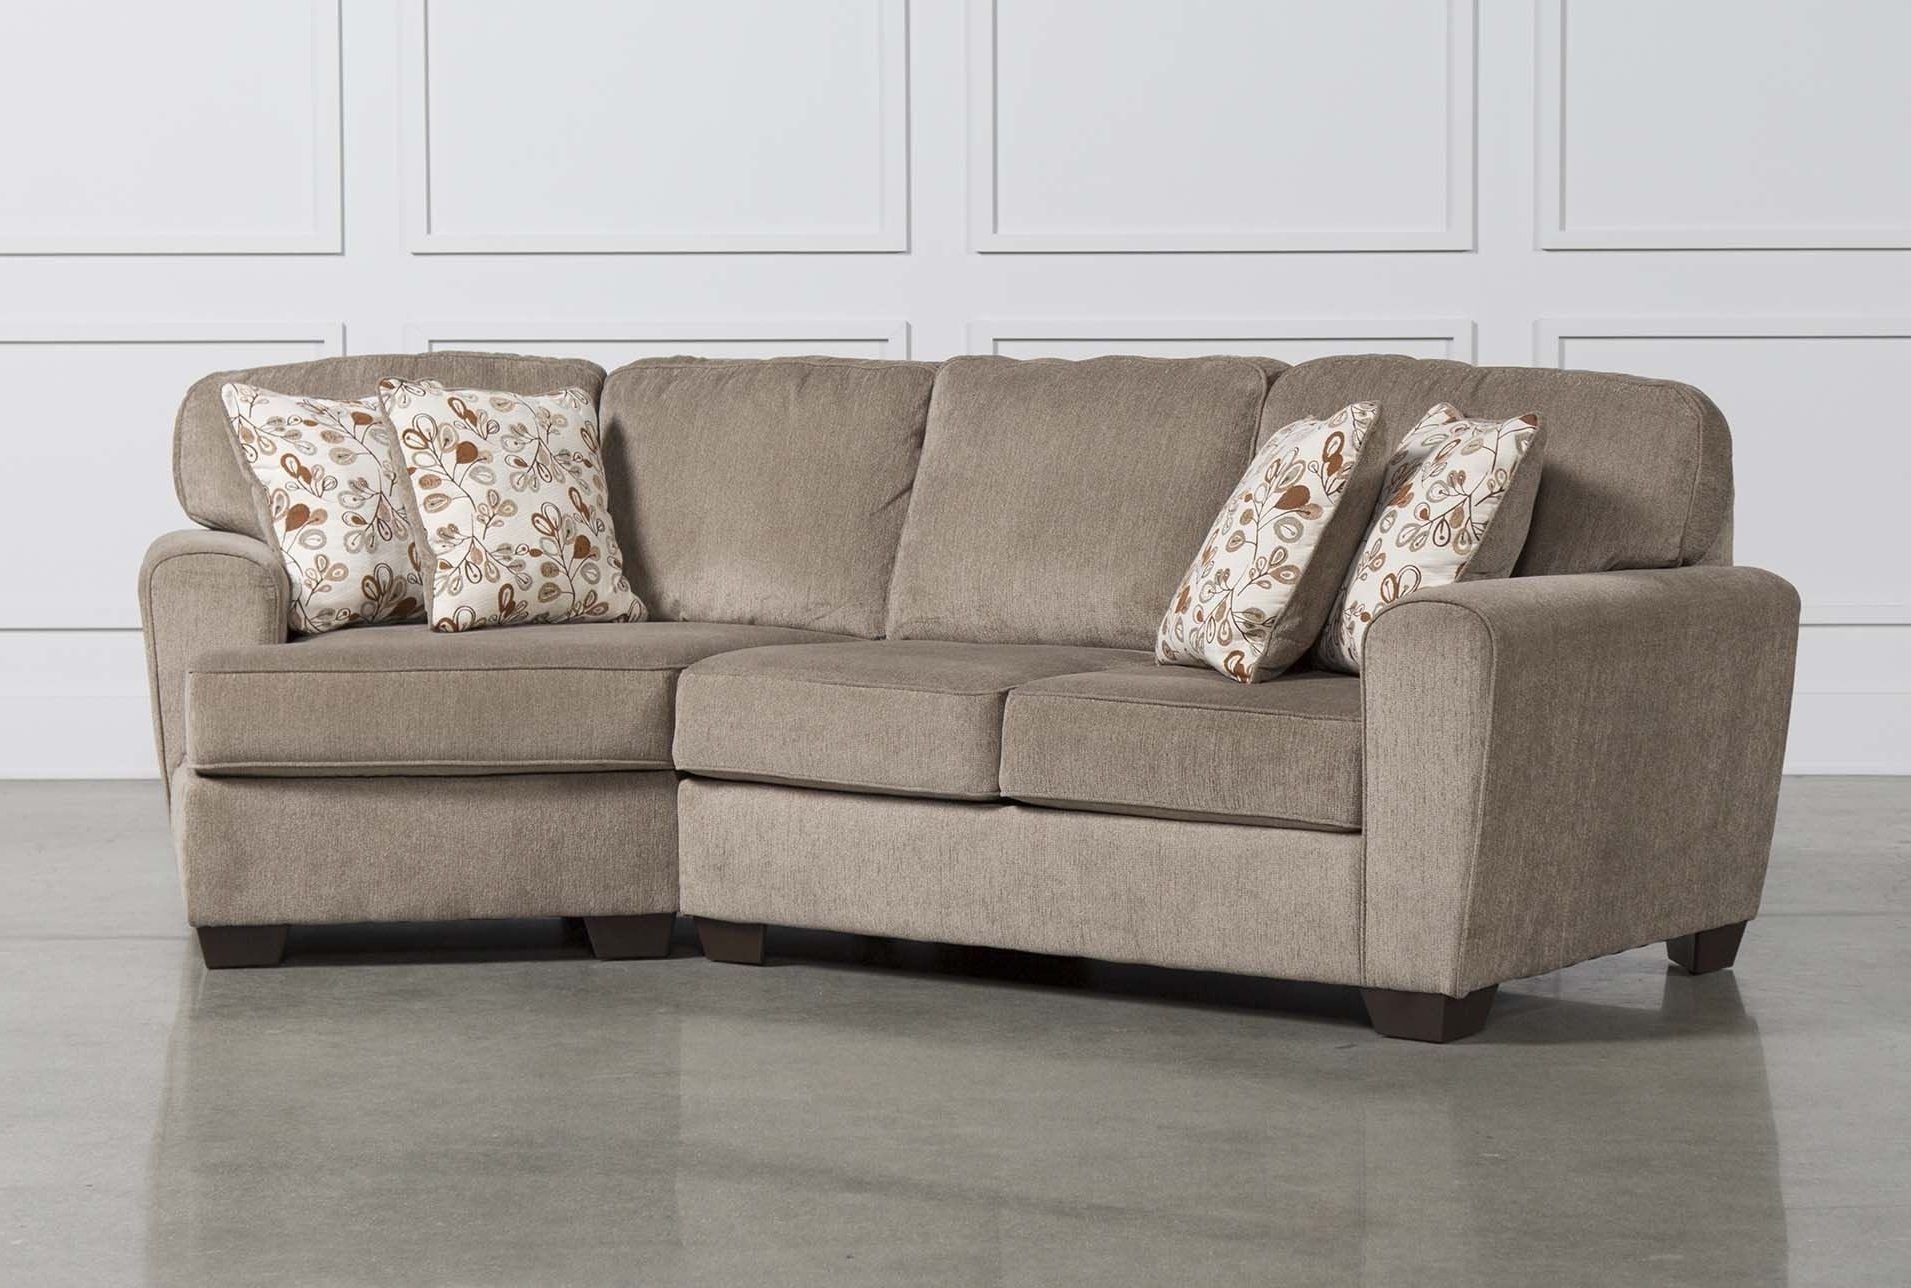 Well Known Cuddler Sectional Sofas Intended For Beautiful Sectional Sofa With A Cuddler – Mediasupload (View 14 of 15)